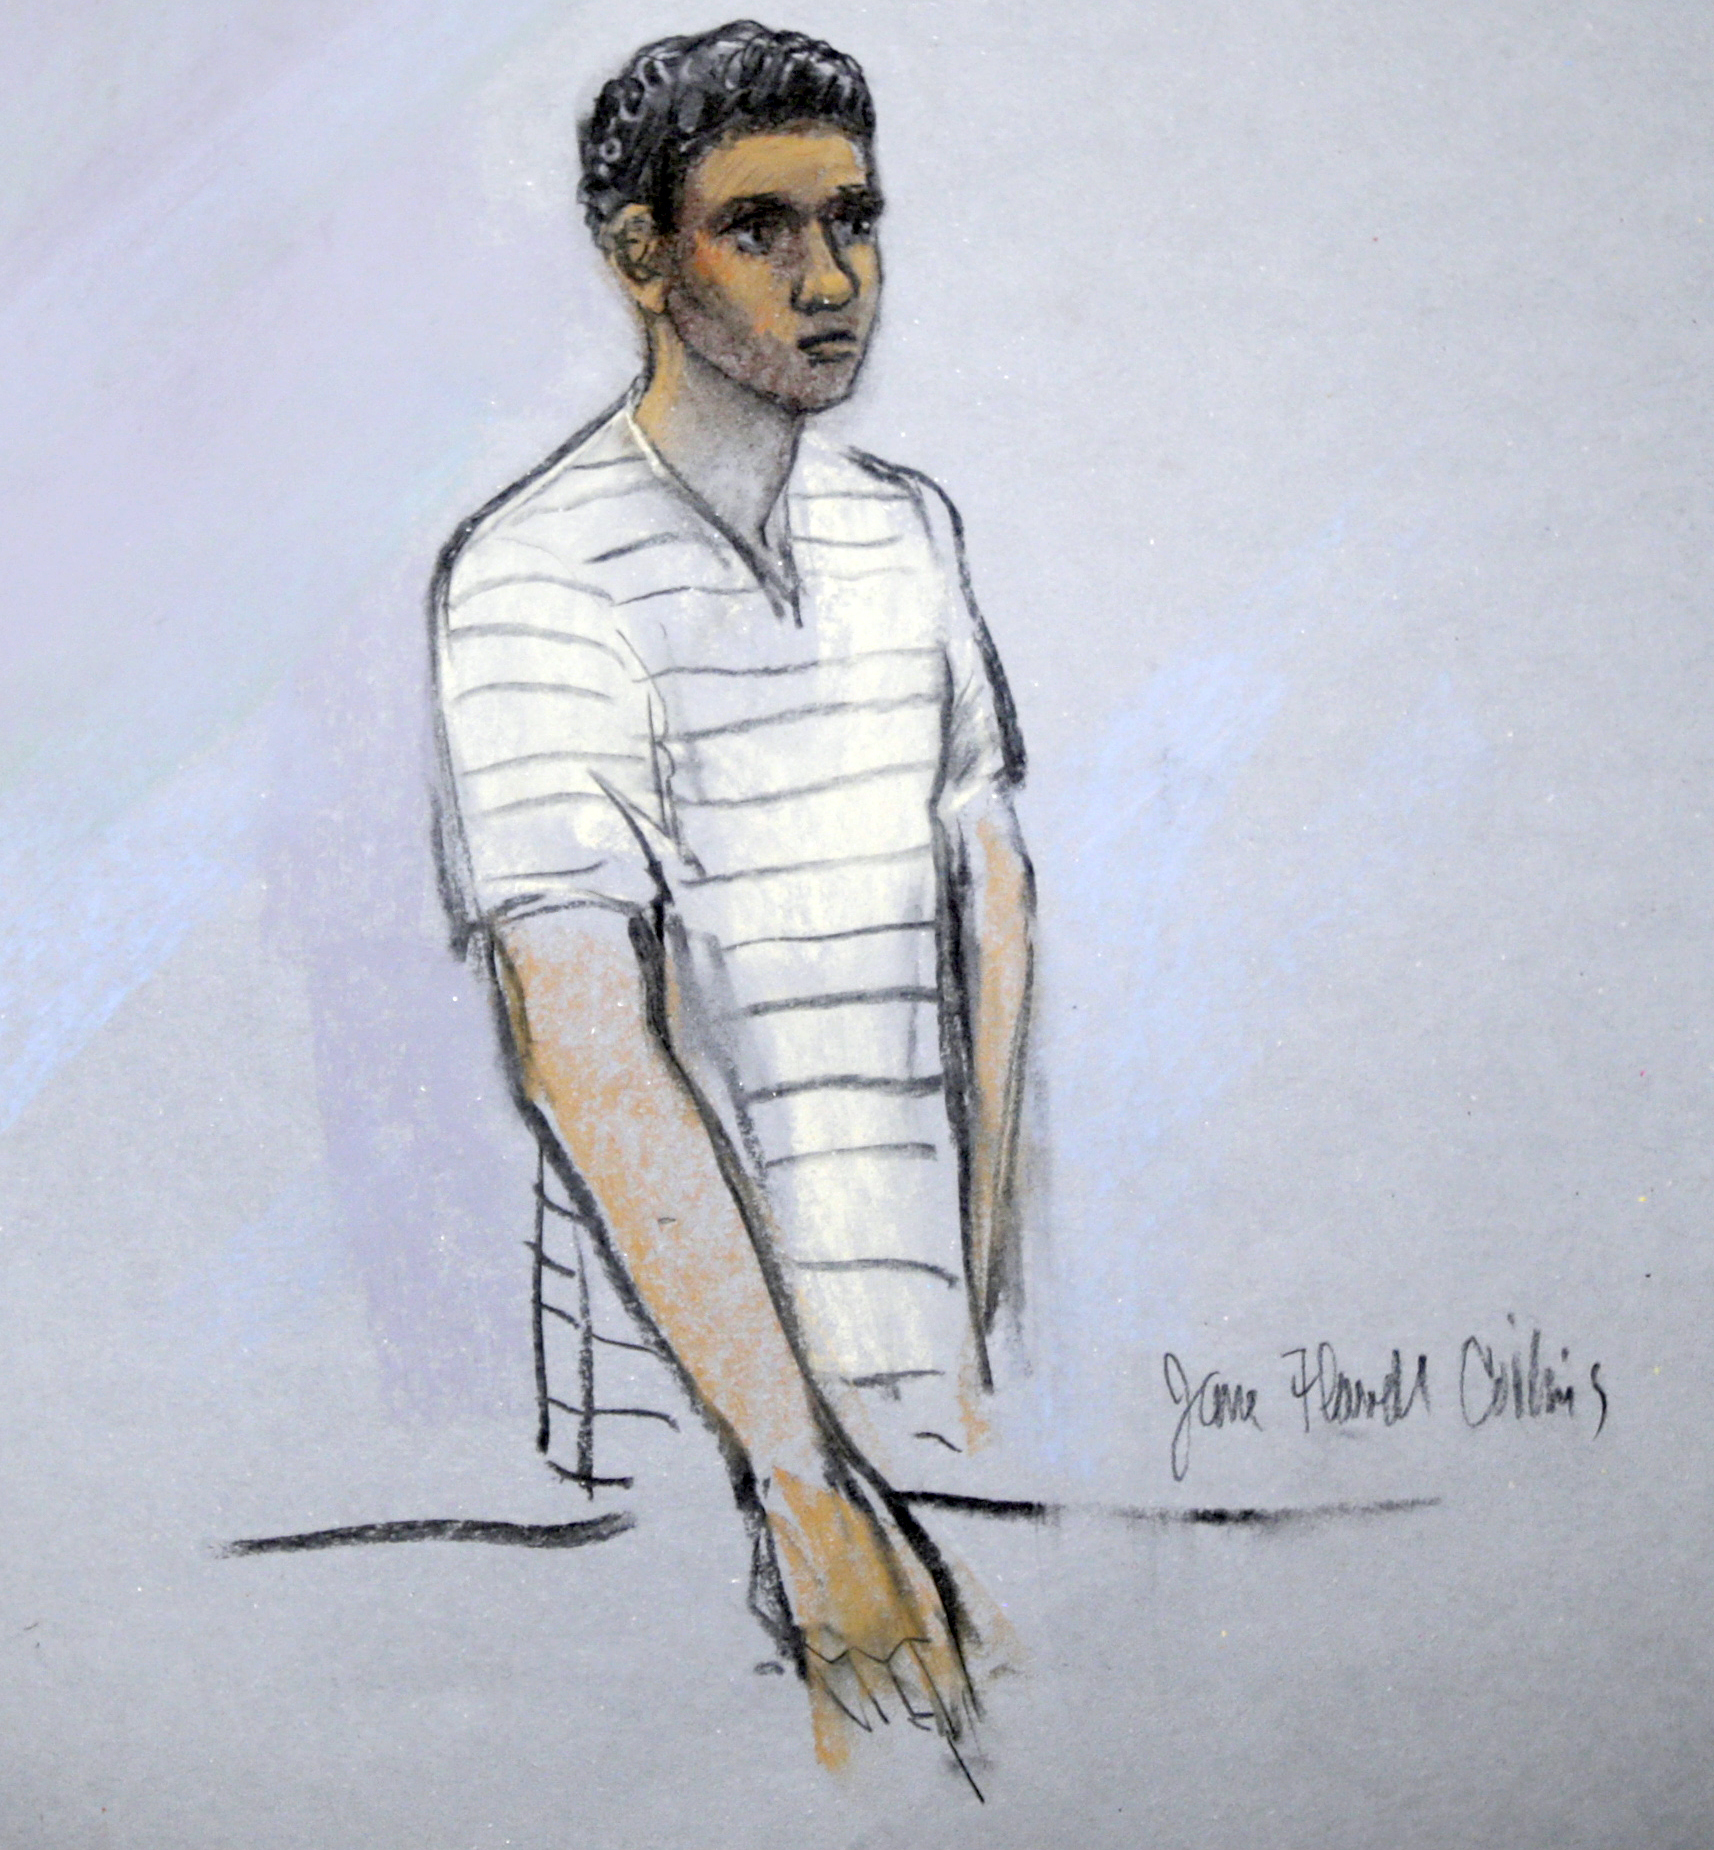 UPDATED: Bombing Suspect's Friend Ordered Freed On Bail